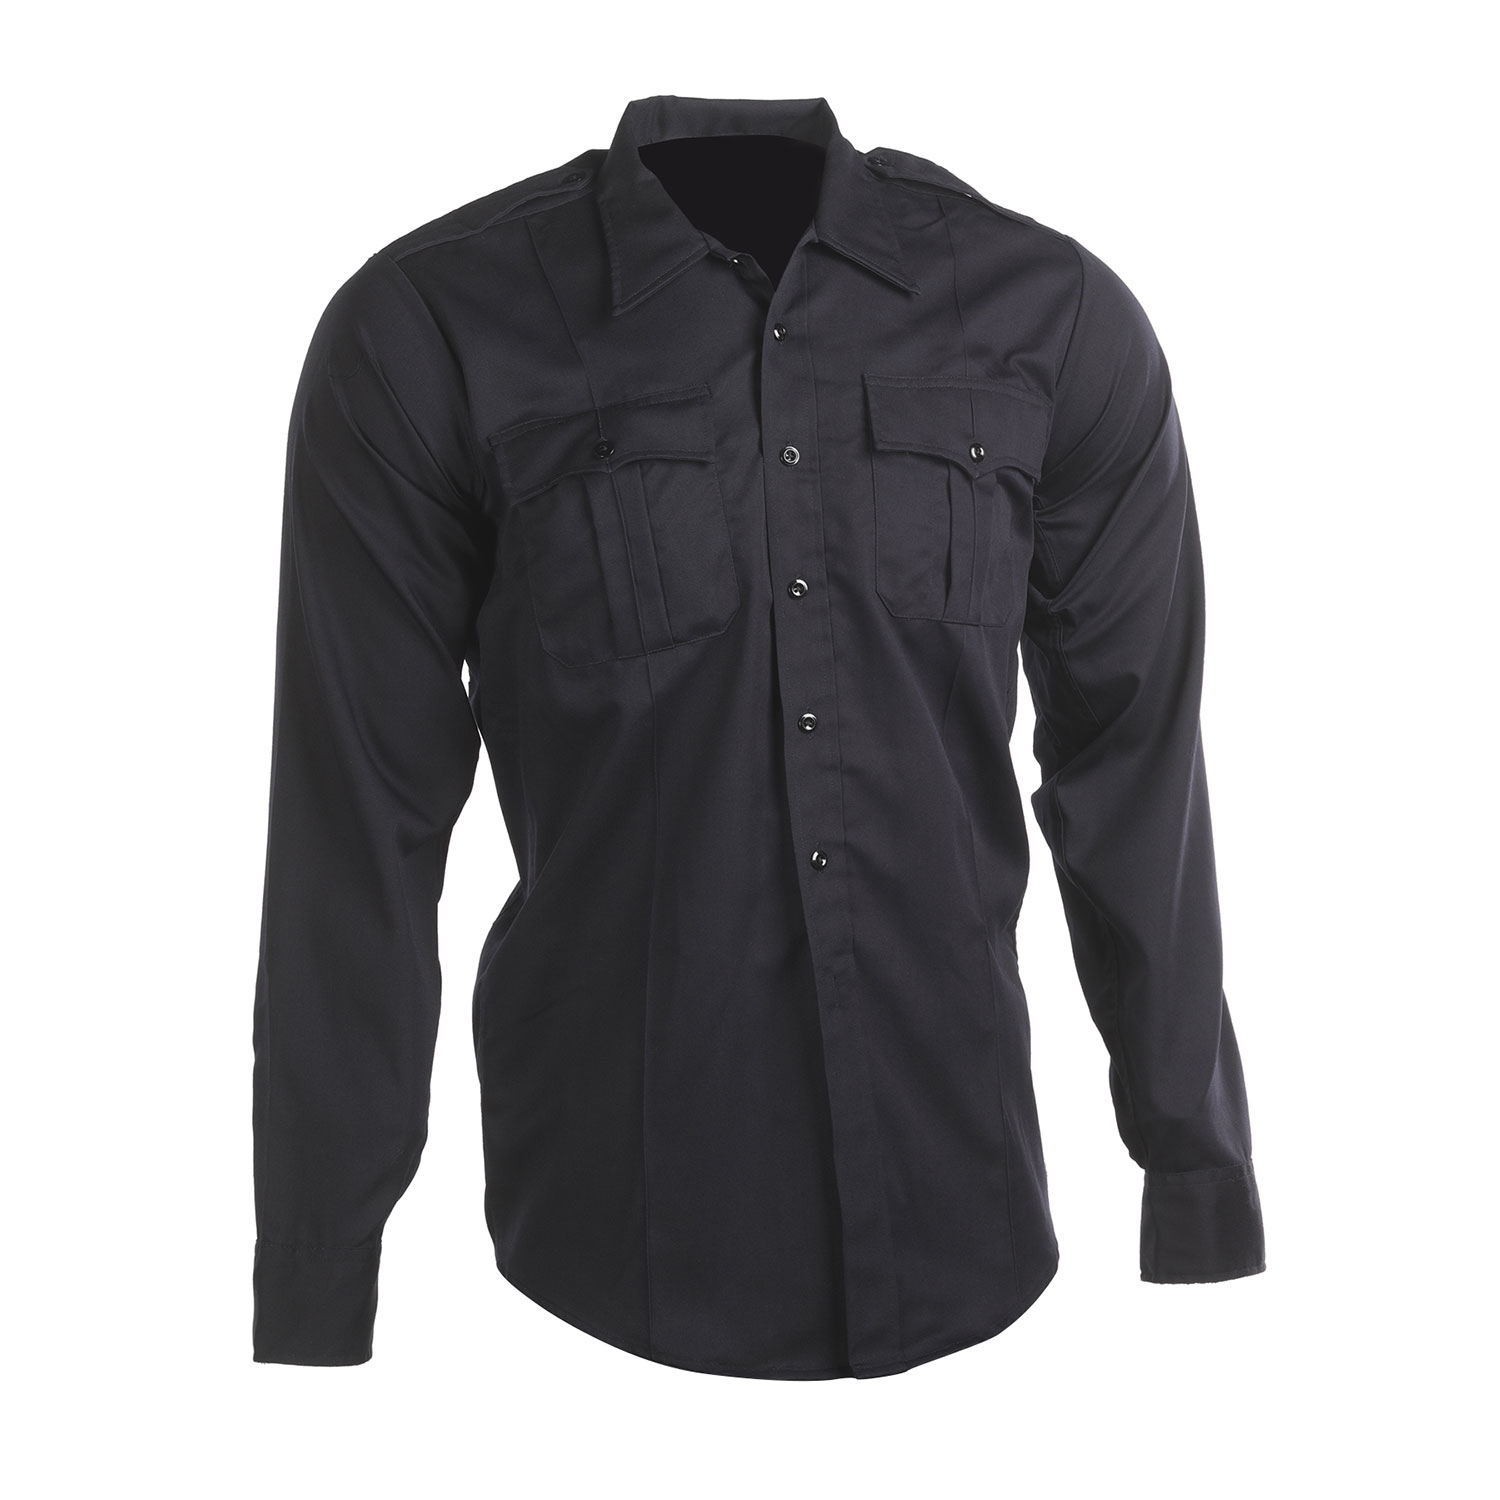 Perfection Matrix Series Zippered Long Sleeve Polo